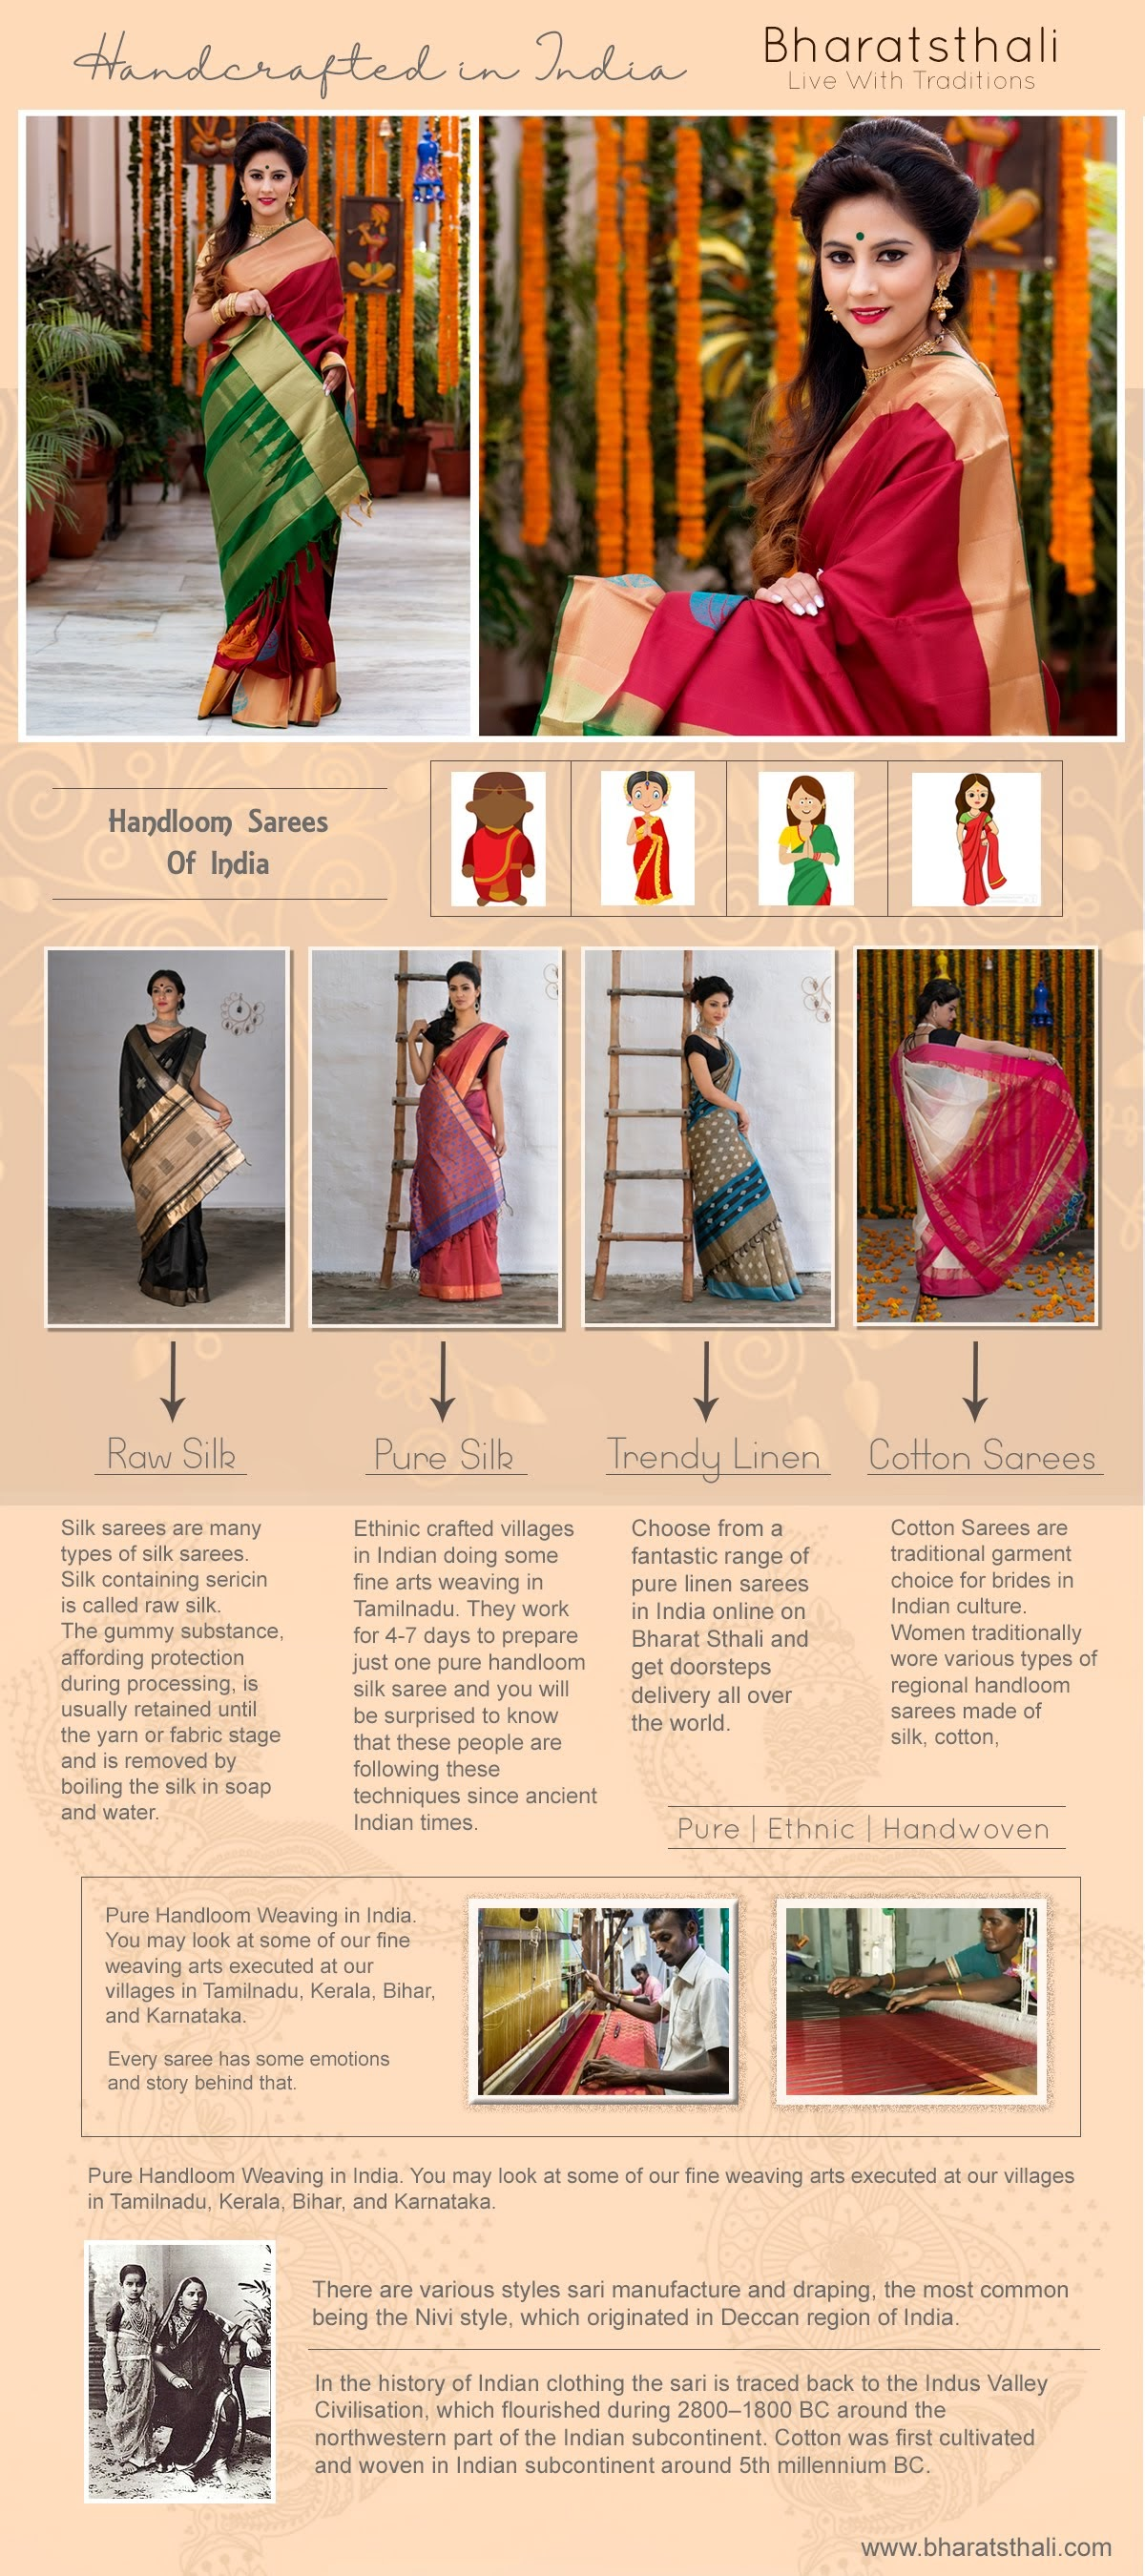 Handloom sarees of India